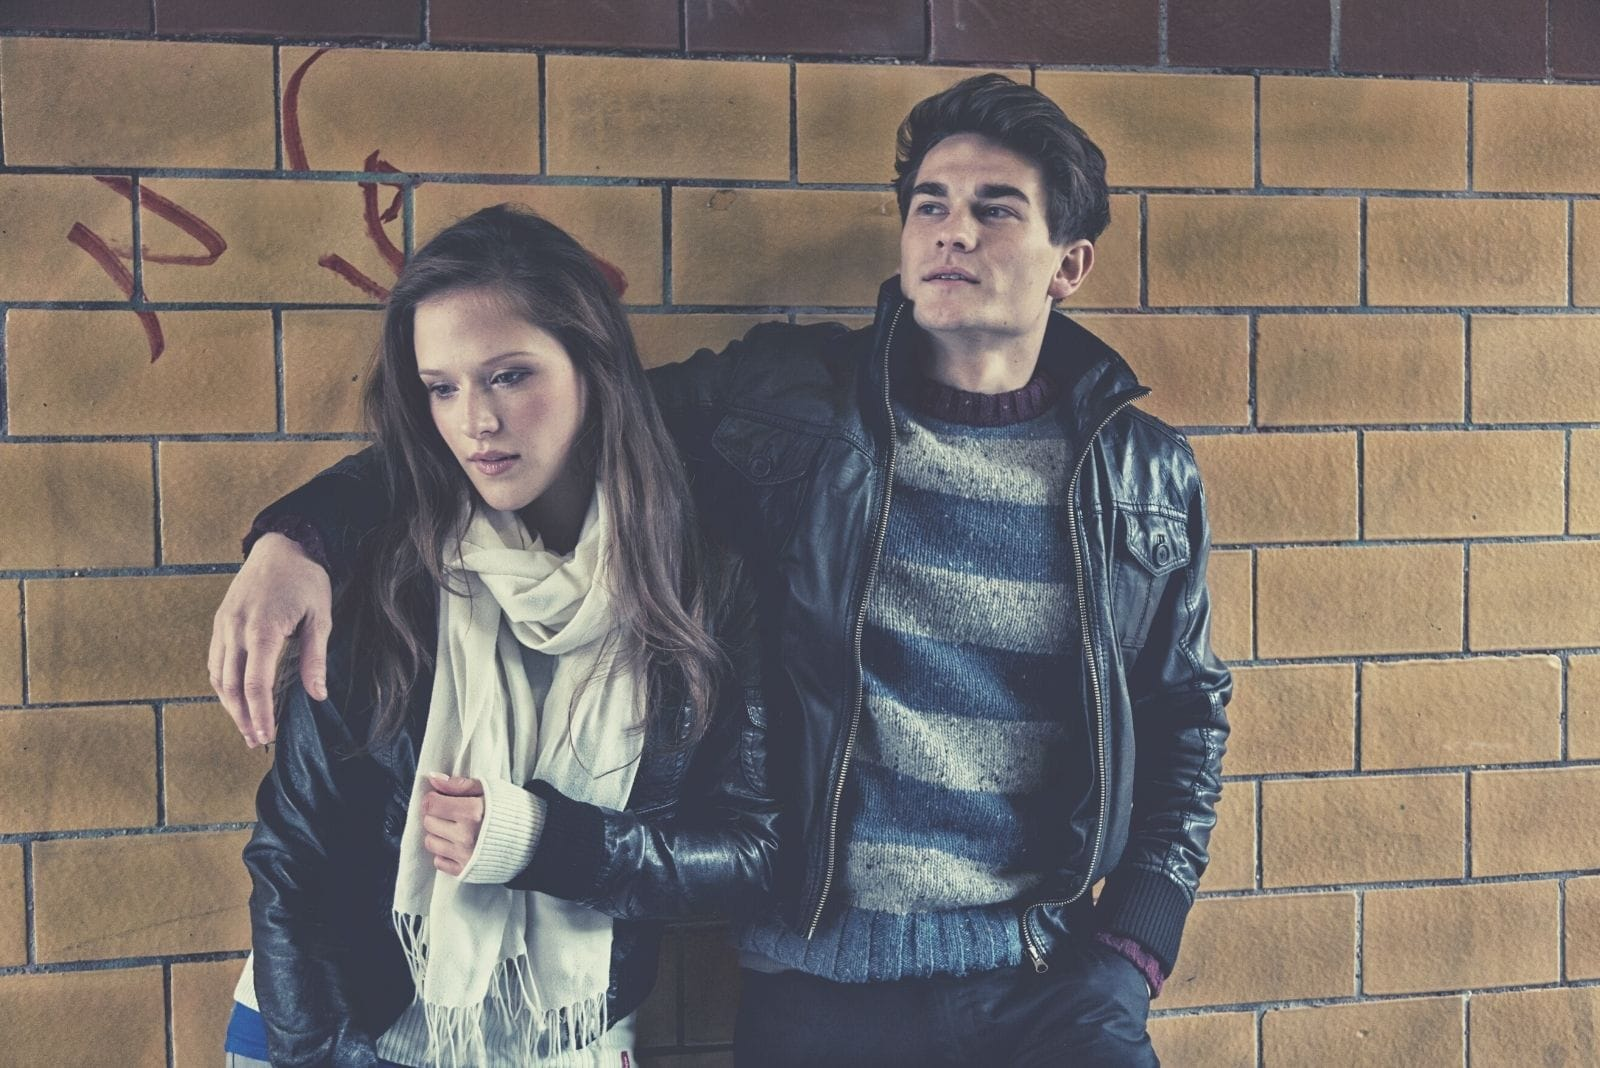 pensive young couple wearing leather jacket standing againg brick wall with hand of the man around the woman's shoulders